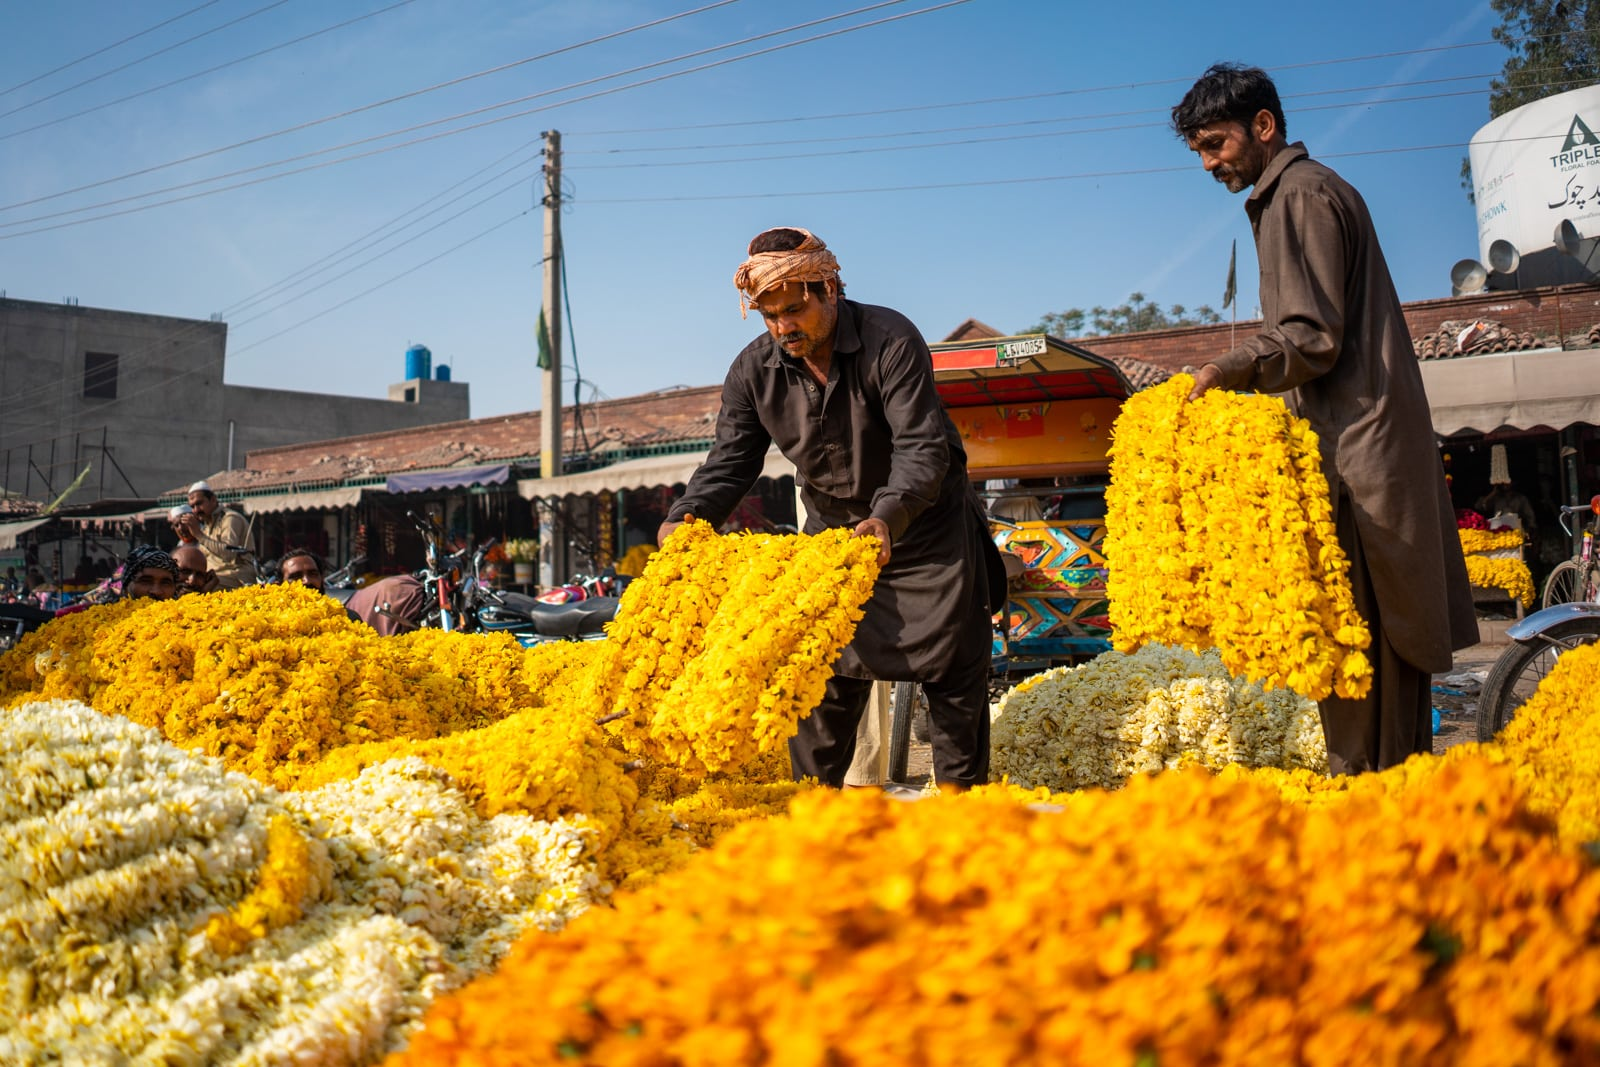 Vendors laying out yellow flowers at Phool Mandi flower market in Lahore, Pakistan